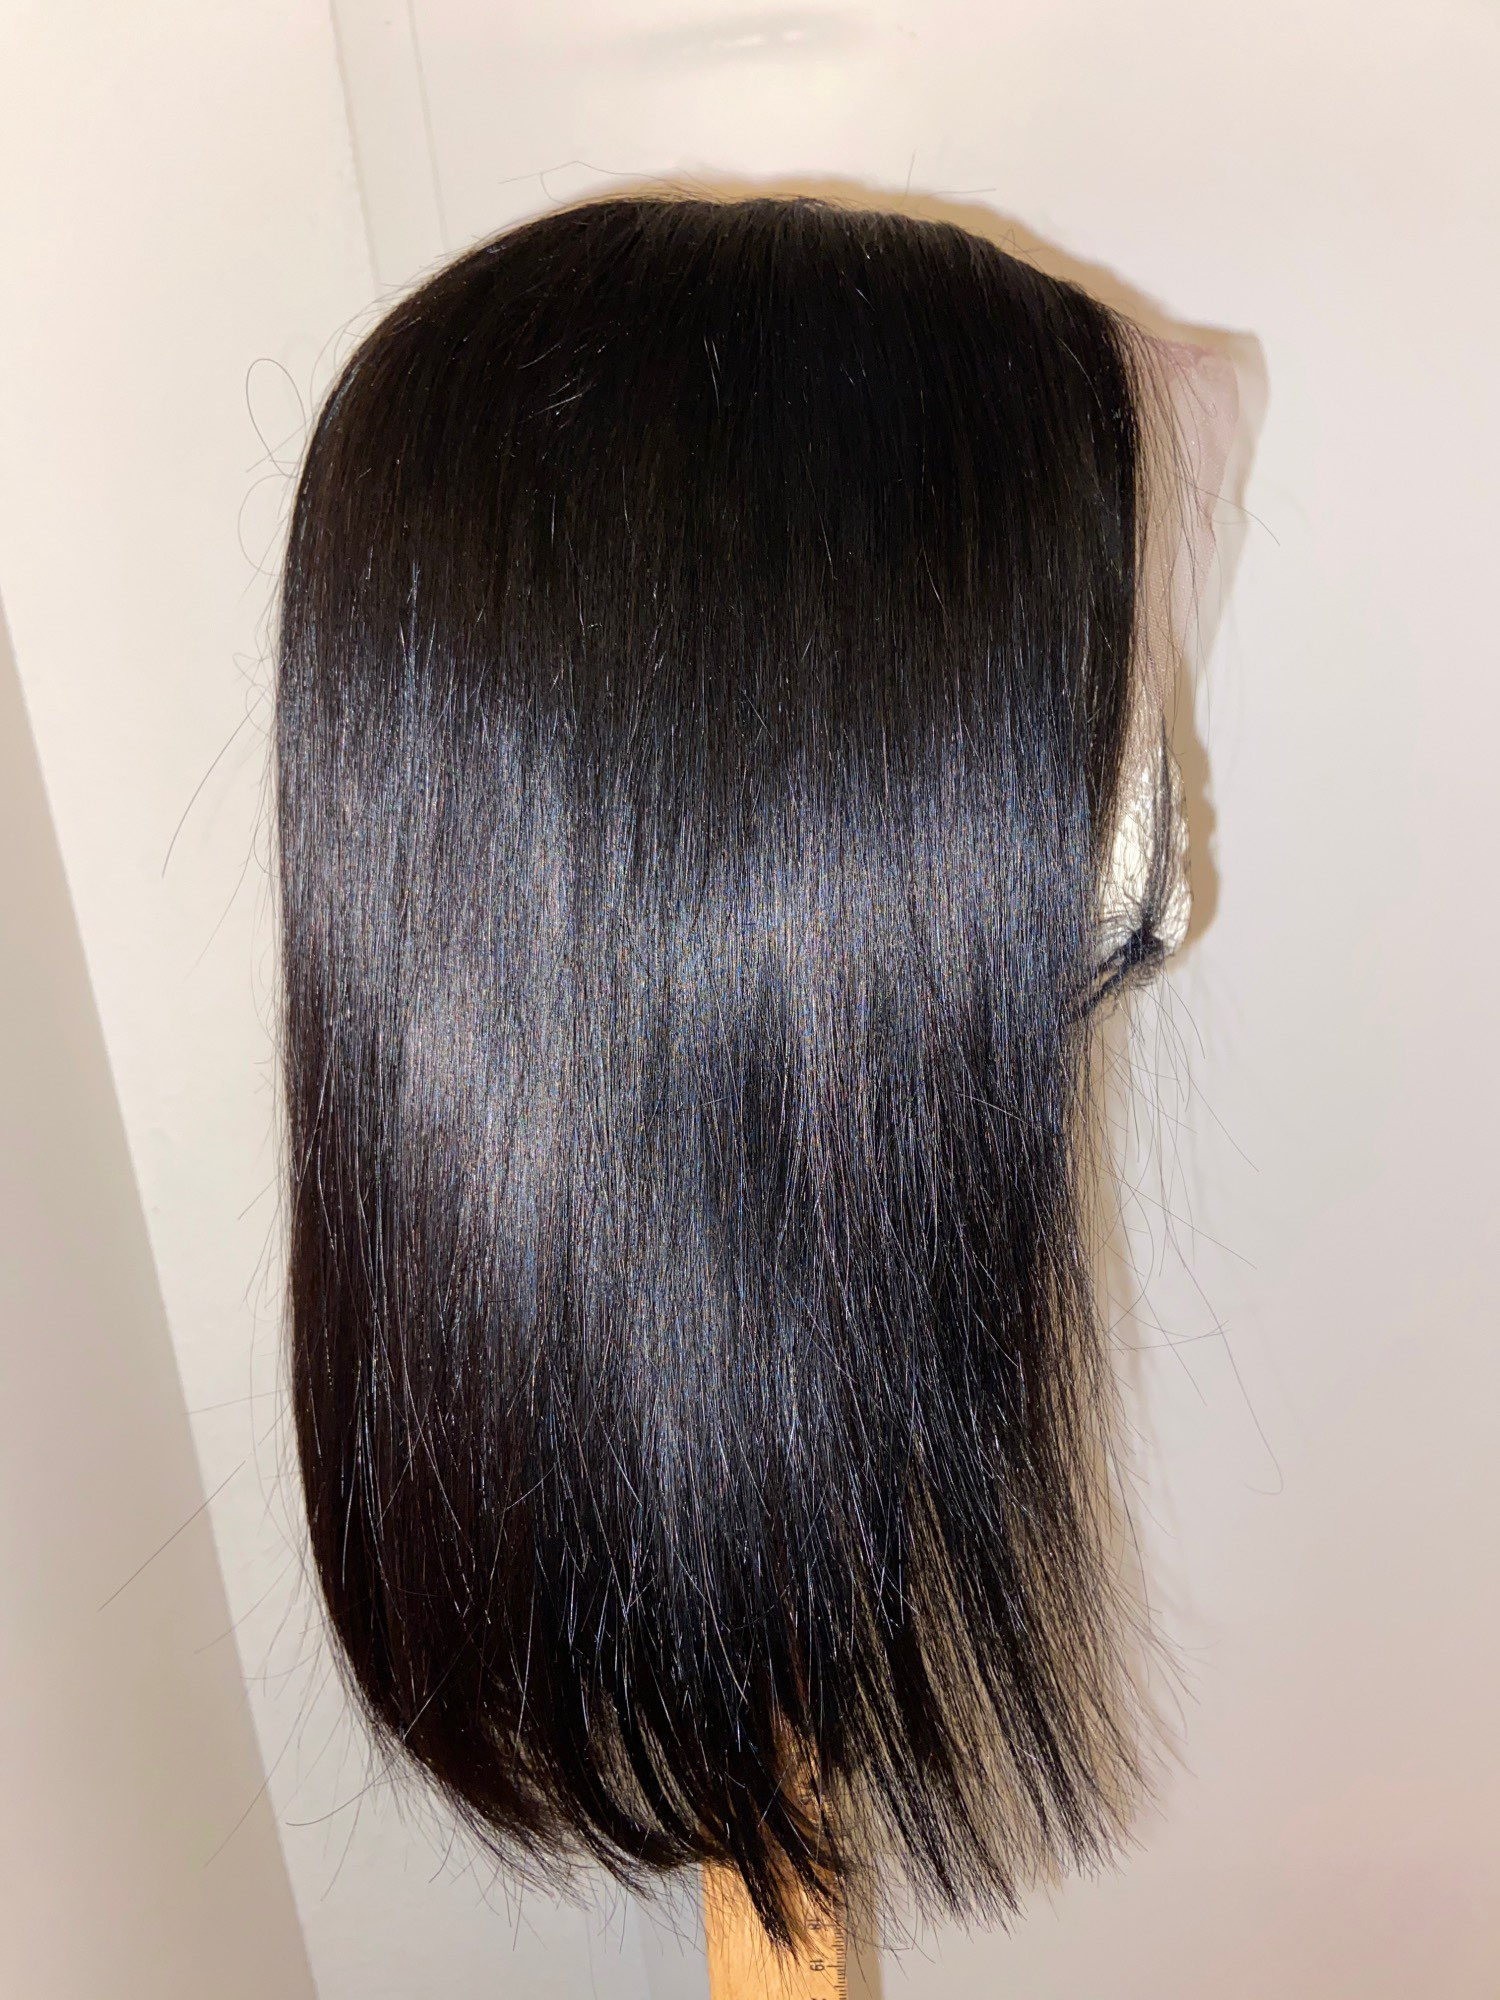 Blunt Cut Bob Wig Brazilian Lace Front Human Hair Wigs Straight Bob Wig For Black Women Remy Lace Closure Wig With Baby Hair photo review